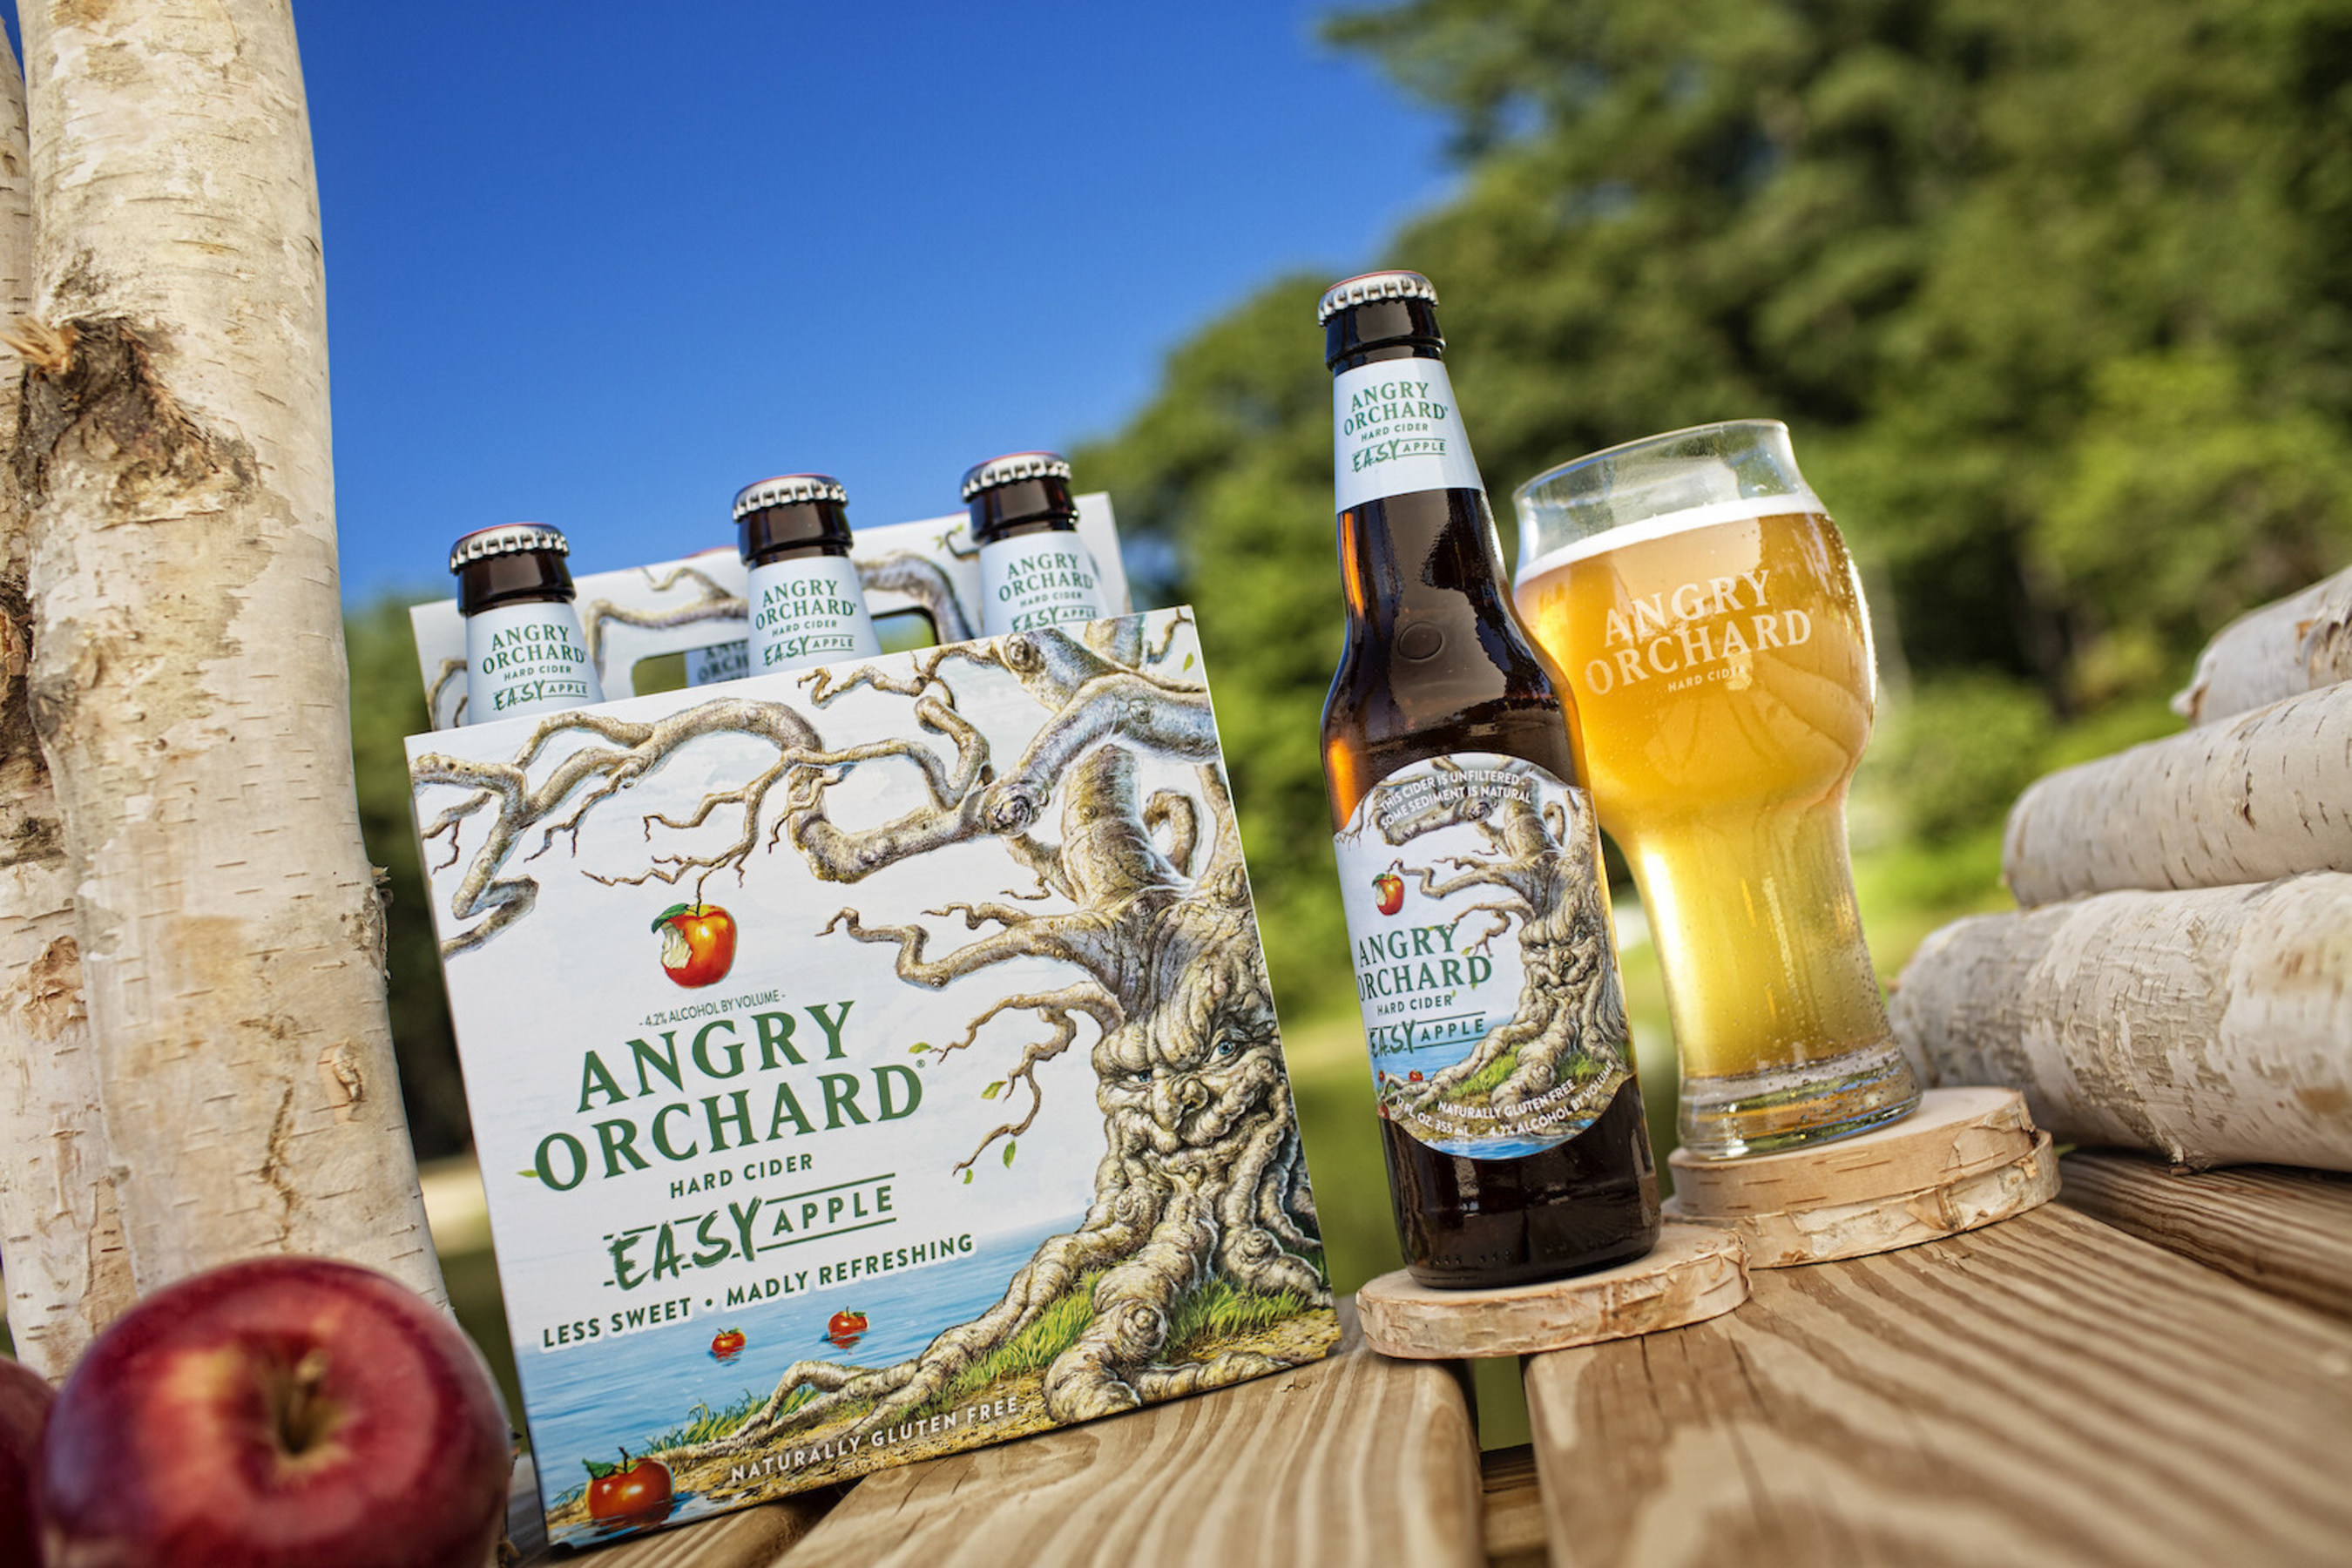 Take It Easy This Season With Angry Orchard Easy Apple Less Sweet Madly Refreshing